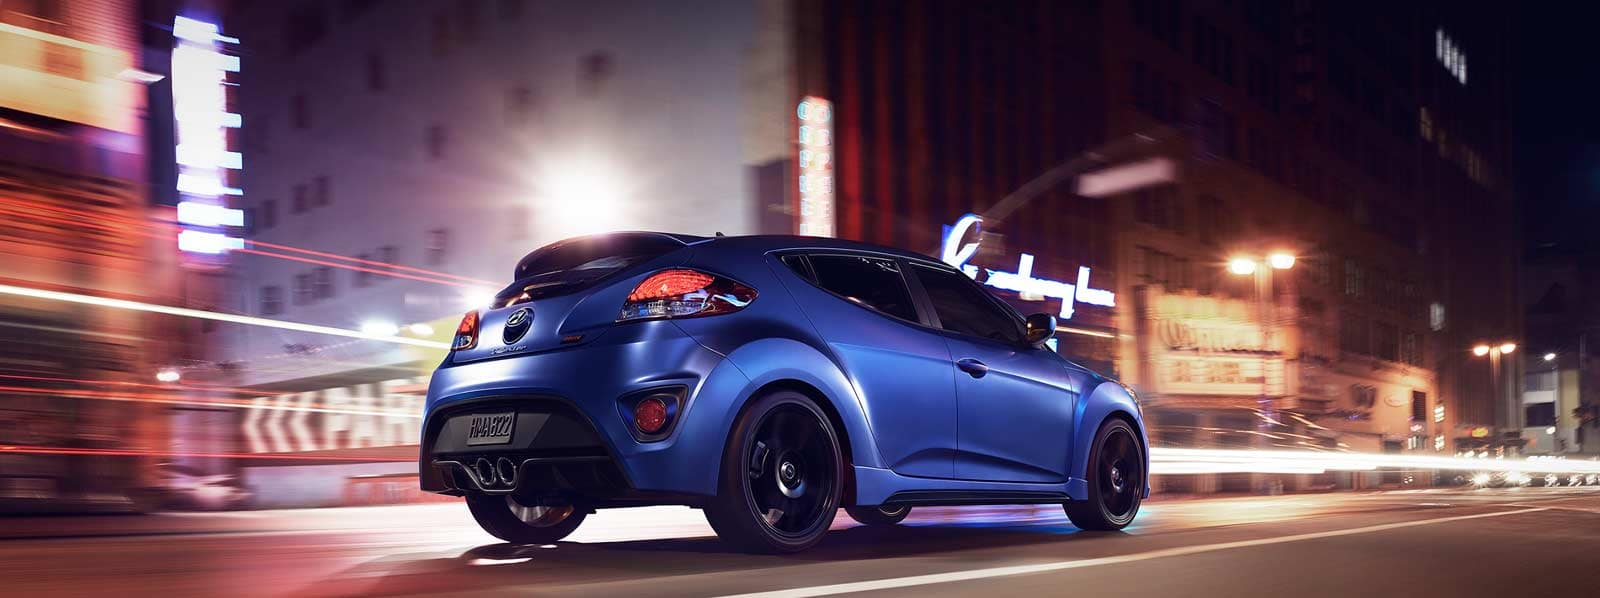 2016 Veloster Rally Edition Blue 0095 Downtown